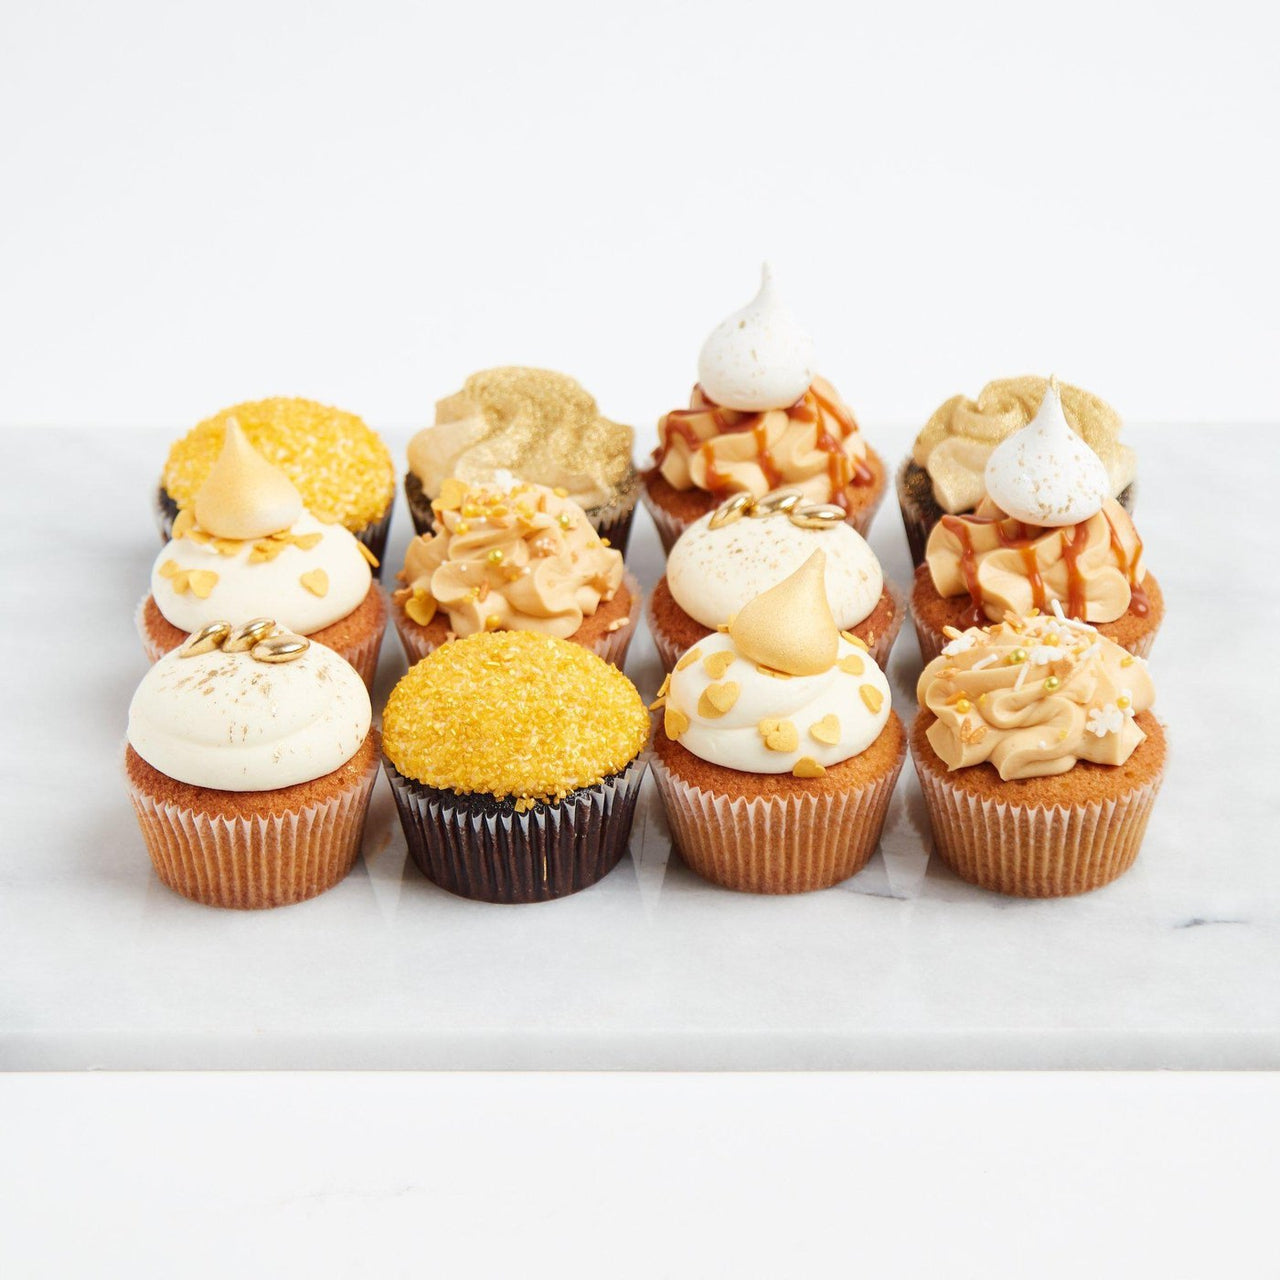 Caramel Gold by Crumbs & Doilies